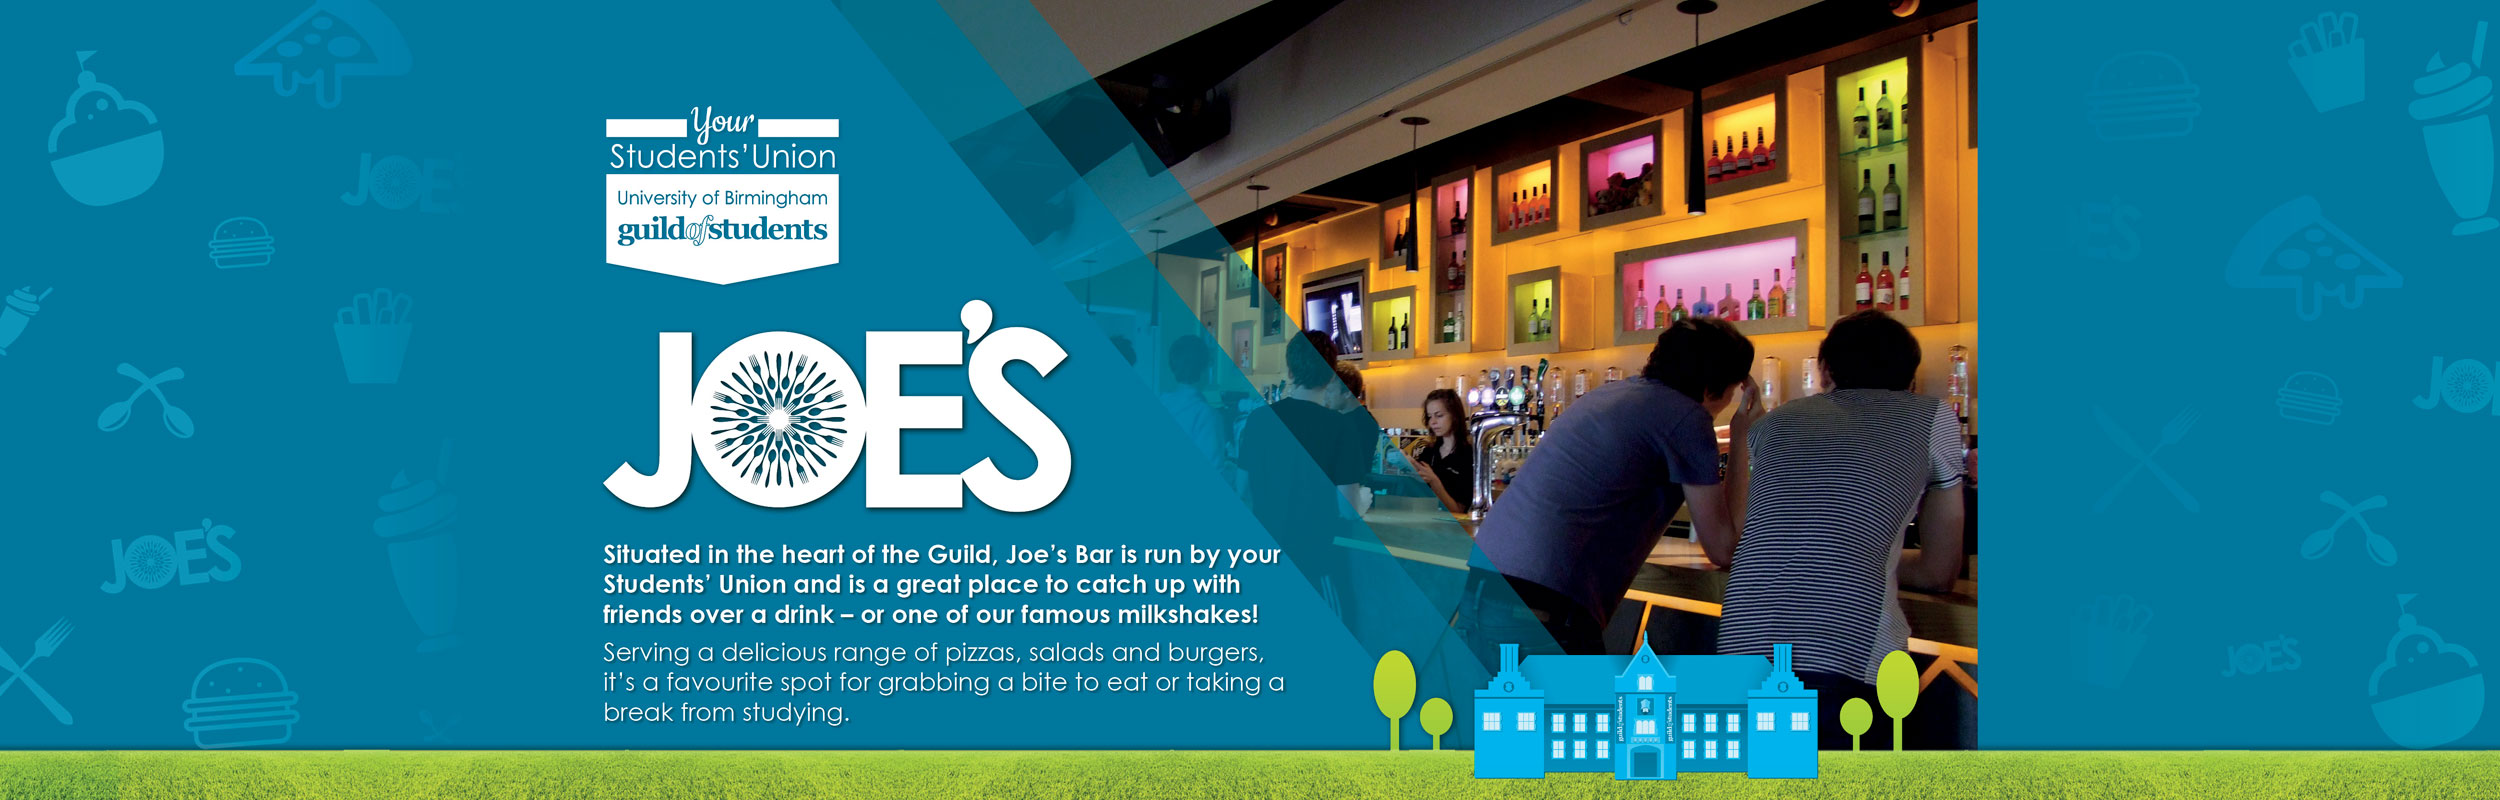 joes bar page header for desktop